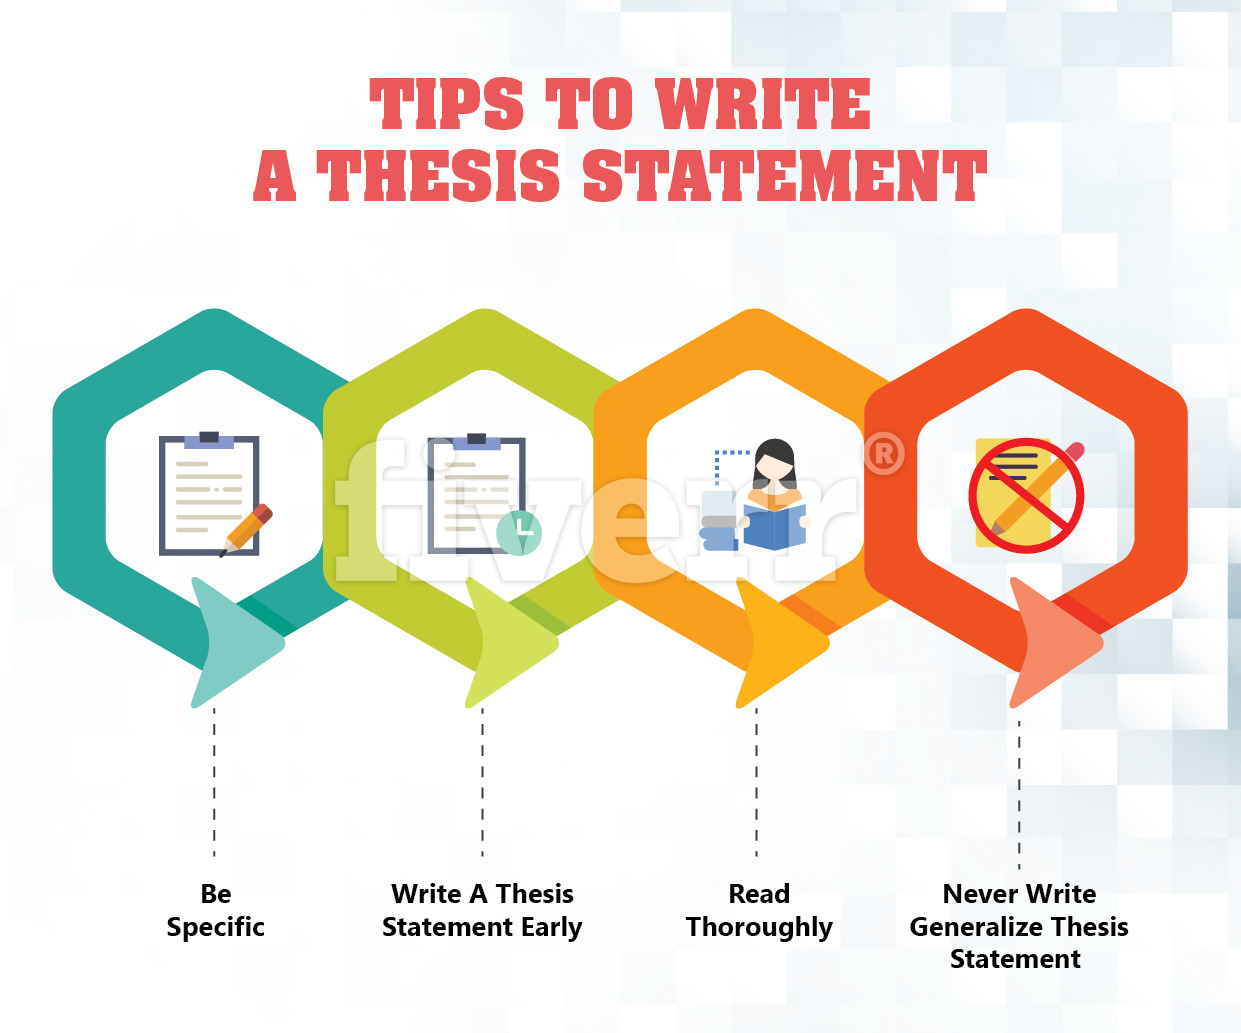 How To Write A Strong Thesis Statement? – Free Essay Writer